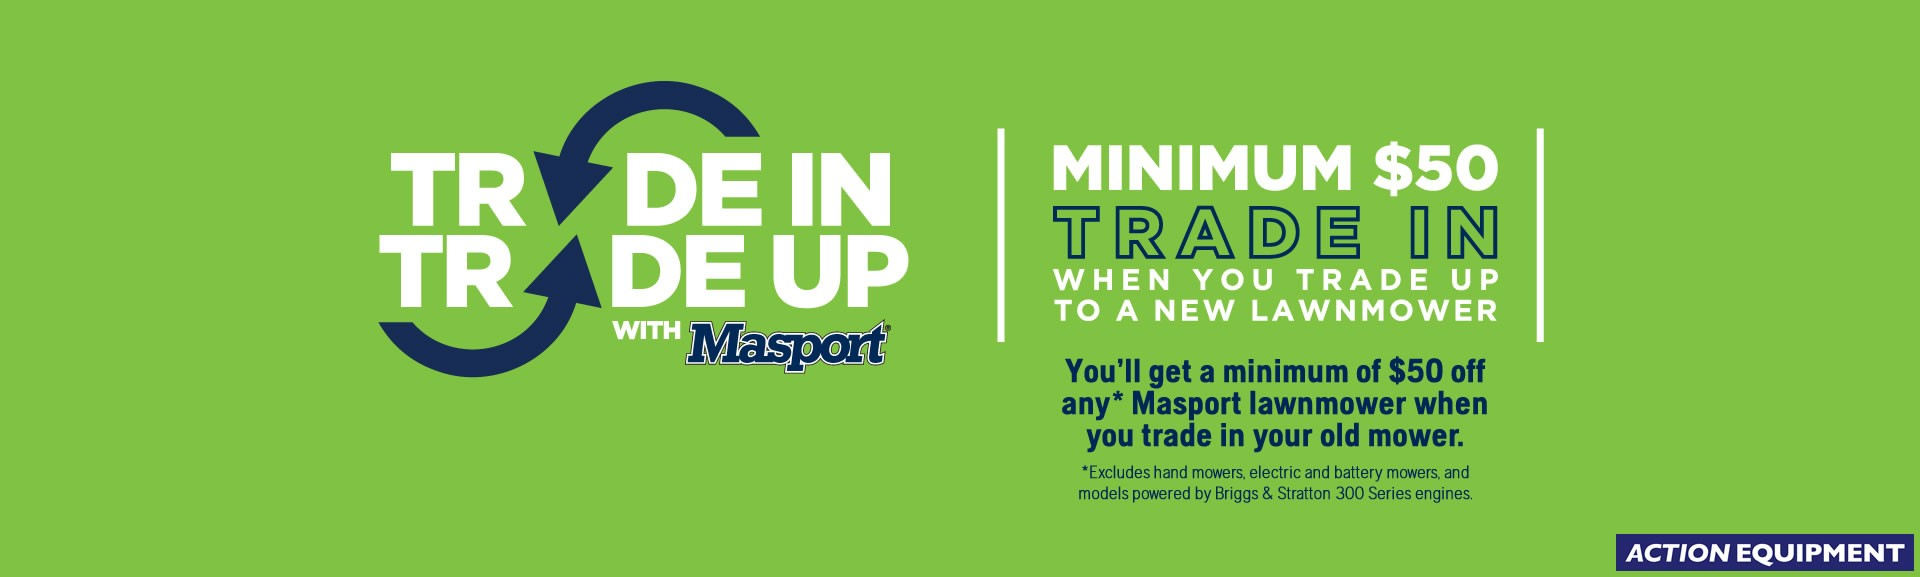 Masport Trade In Trade Up Promotion